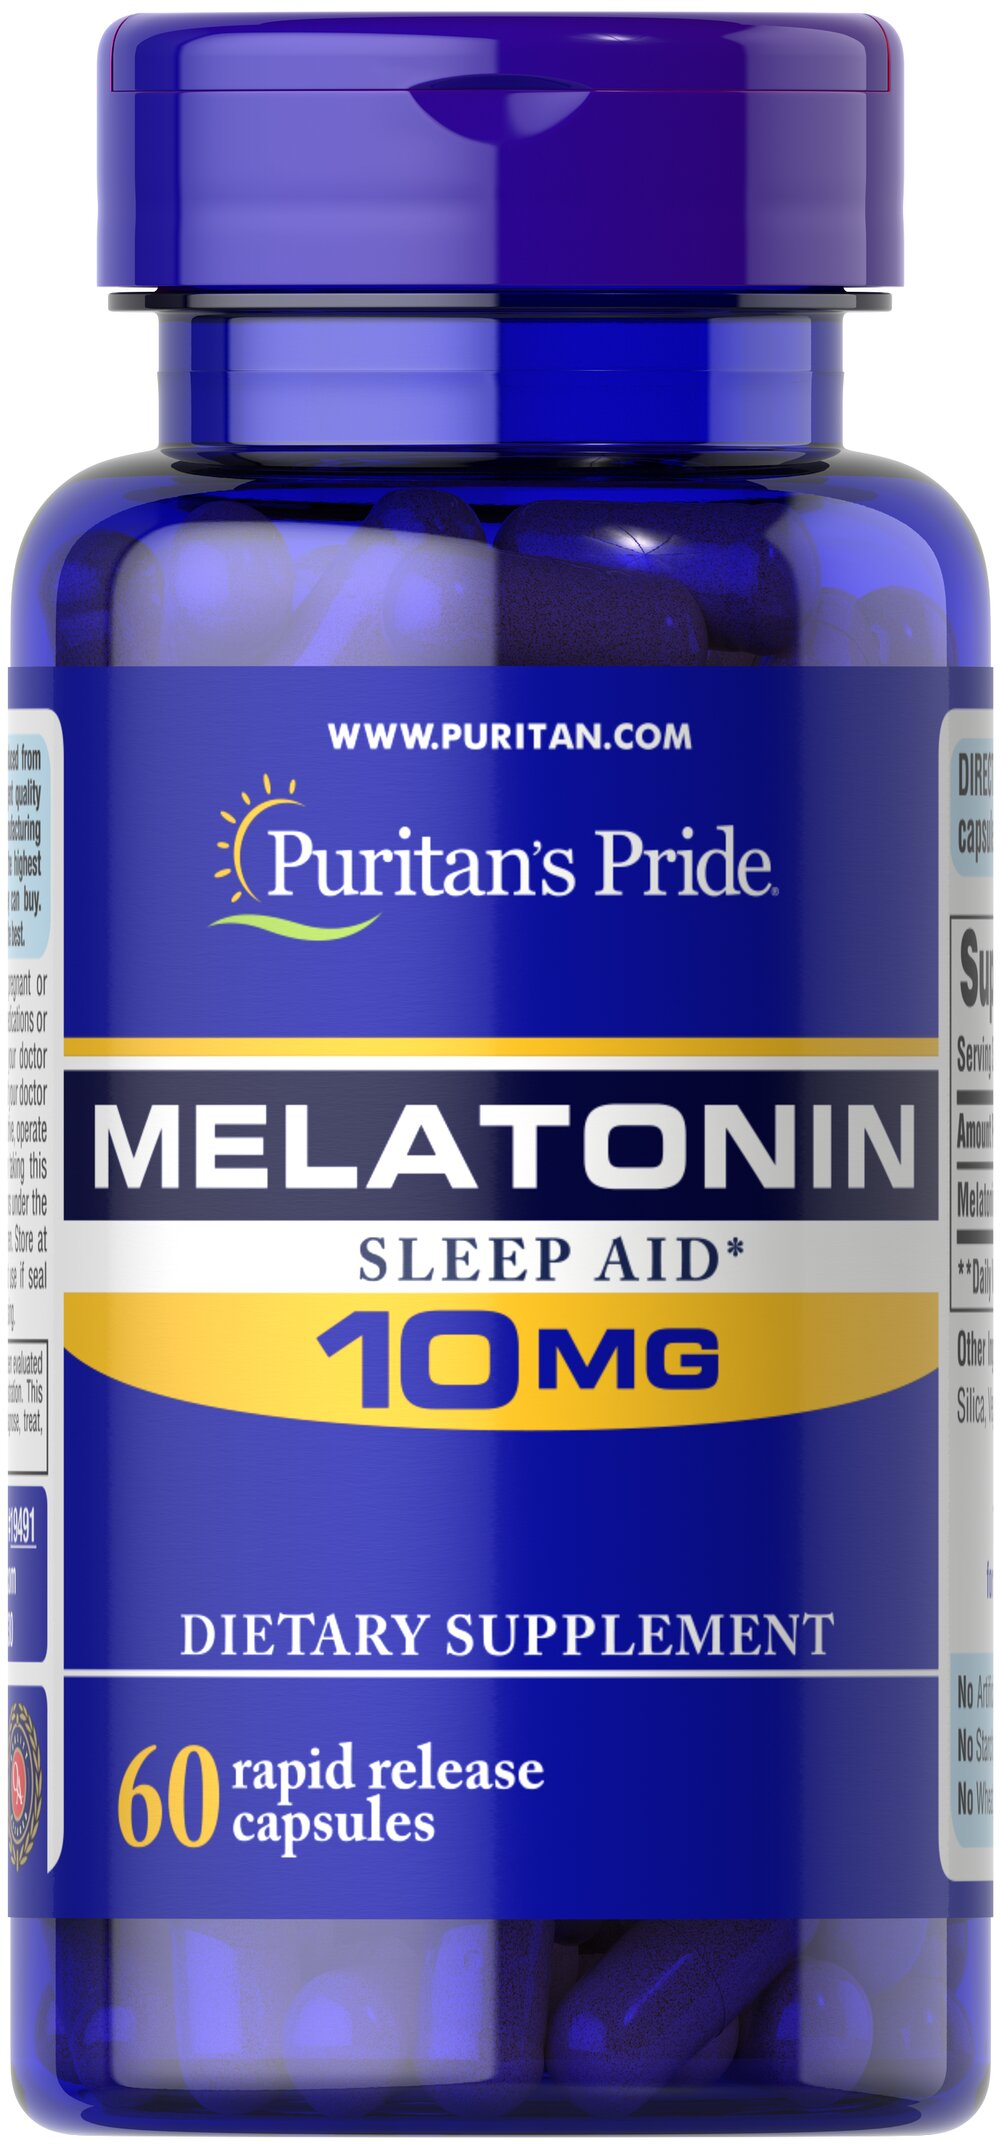 Melatonin 10 mg <p>Sometimes it's hard to unwind after a long day. That's when it's time for Melatonin, a hormone naturally produced in the body that is closely involved in the natural sleep cycle.** It's a terrific choice if you experience occasional sleeplessness or jet lag, or if you want to improve your quality of rest.**  Melatonin helps you fall asleep quickly and stay asleep longer**<br /></p> 60 Capsules 10 mg $11.49